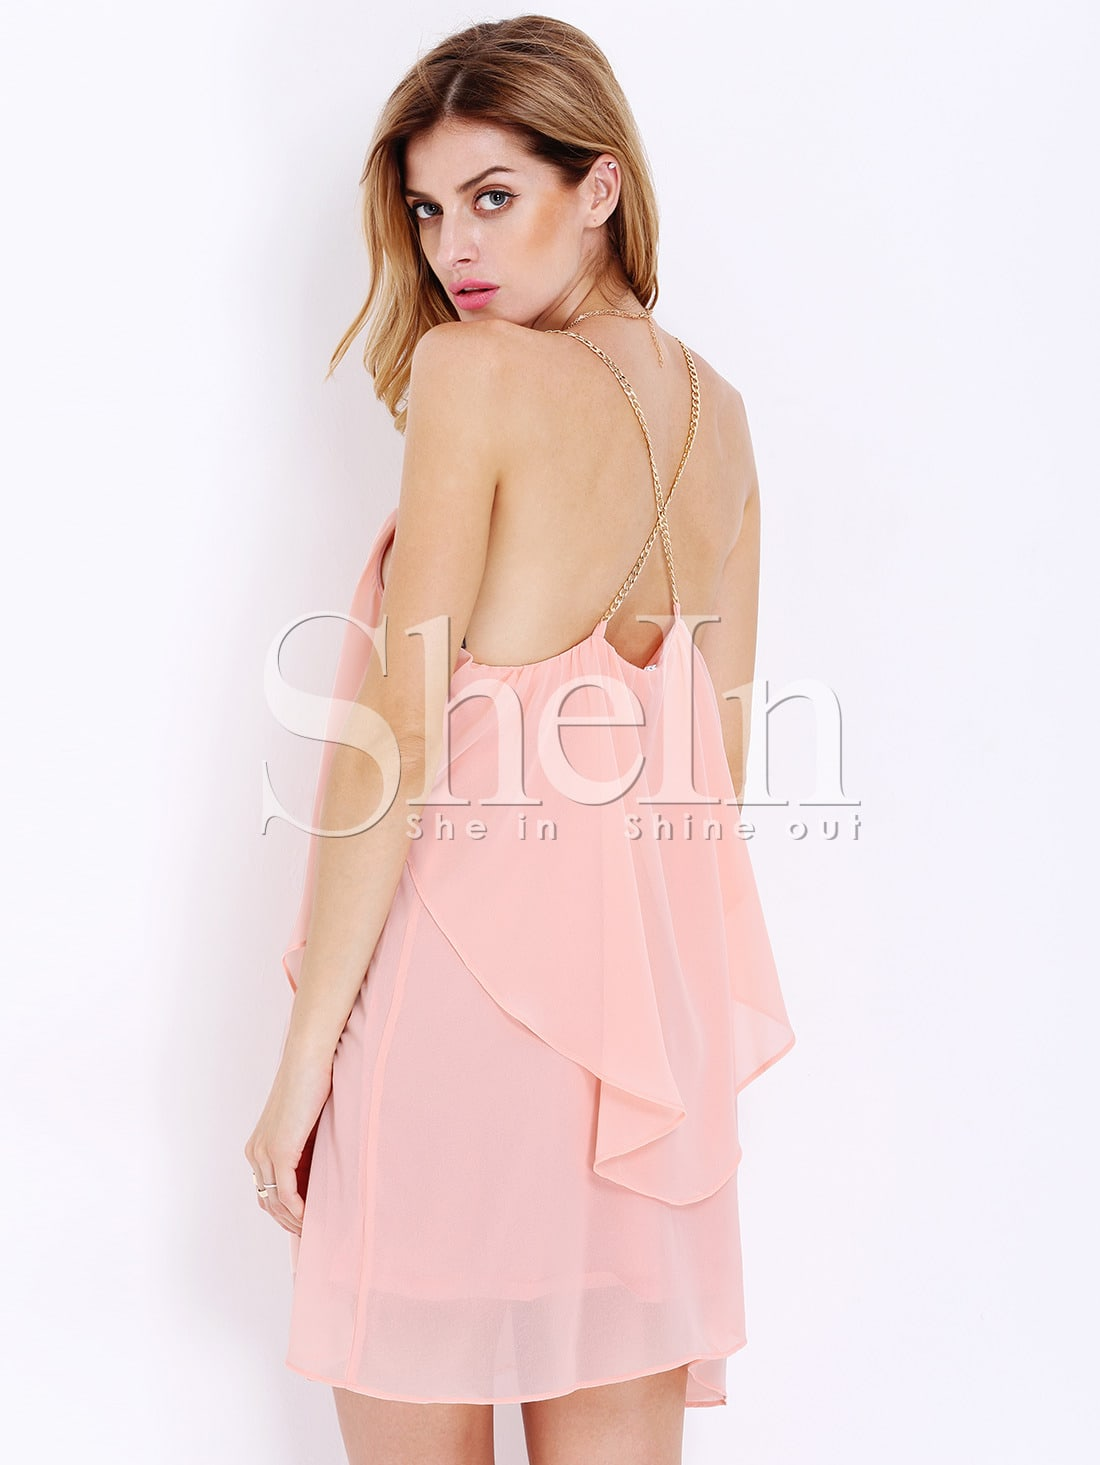 Pink Slip Spaghetti Strap Wrinkle Ruffle DressPink Slip Spaghetti Strap Wrinkle Ruffle Dress<br><br>color: Pink<br>size: L